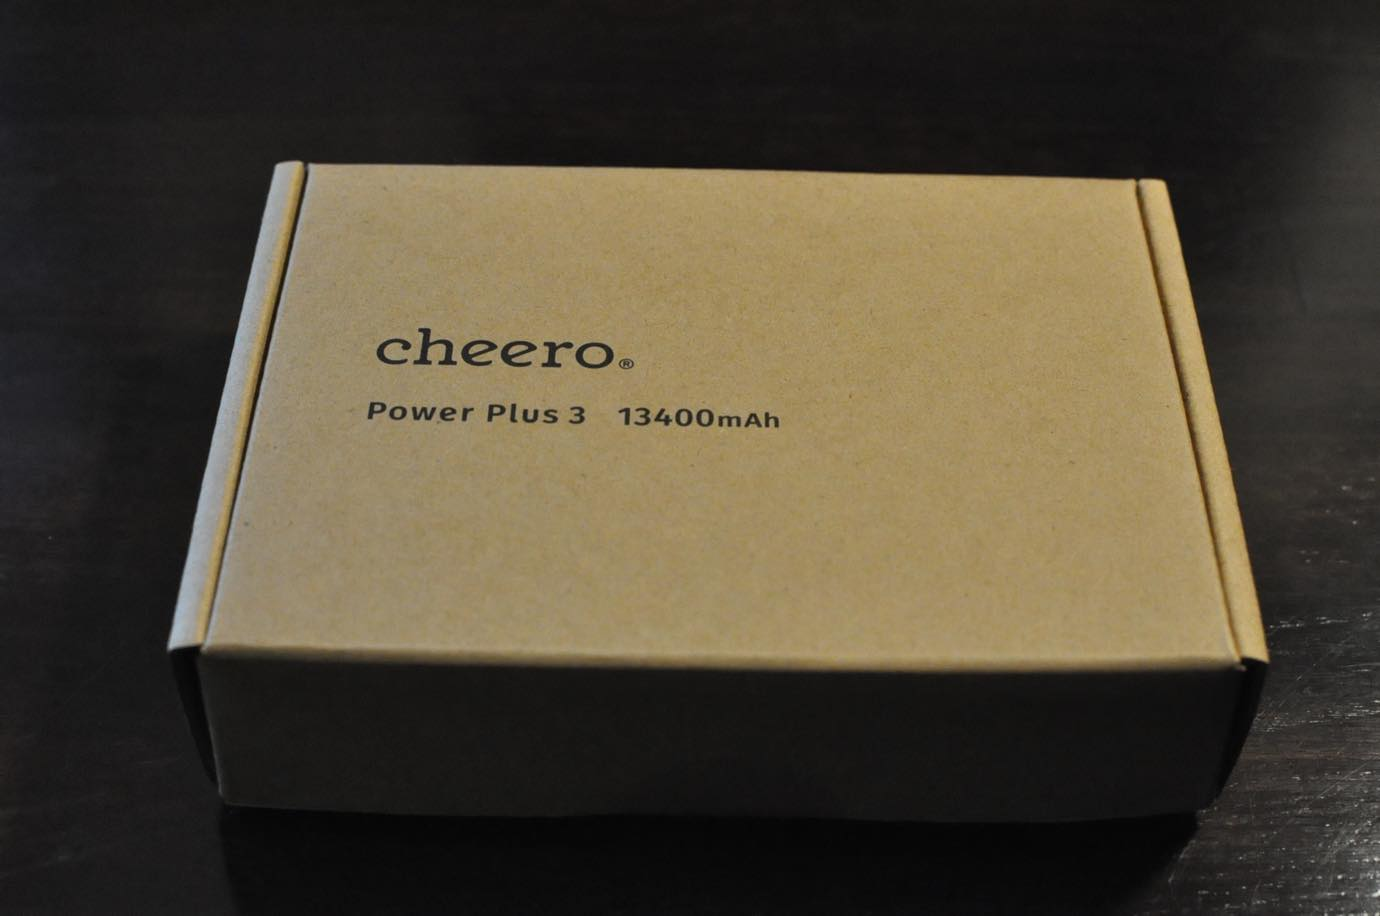 Cheero Power Plus 3 10 20150806 215454